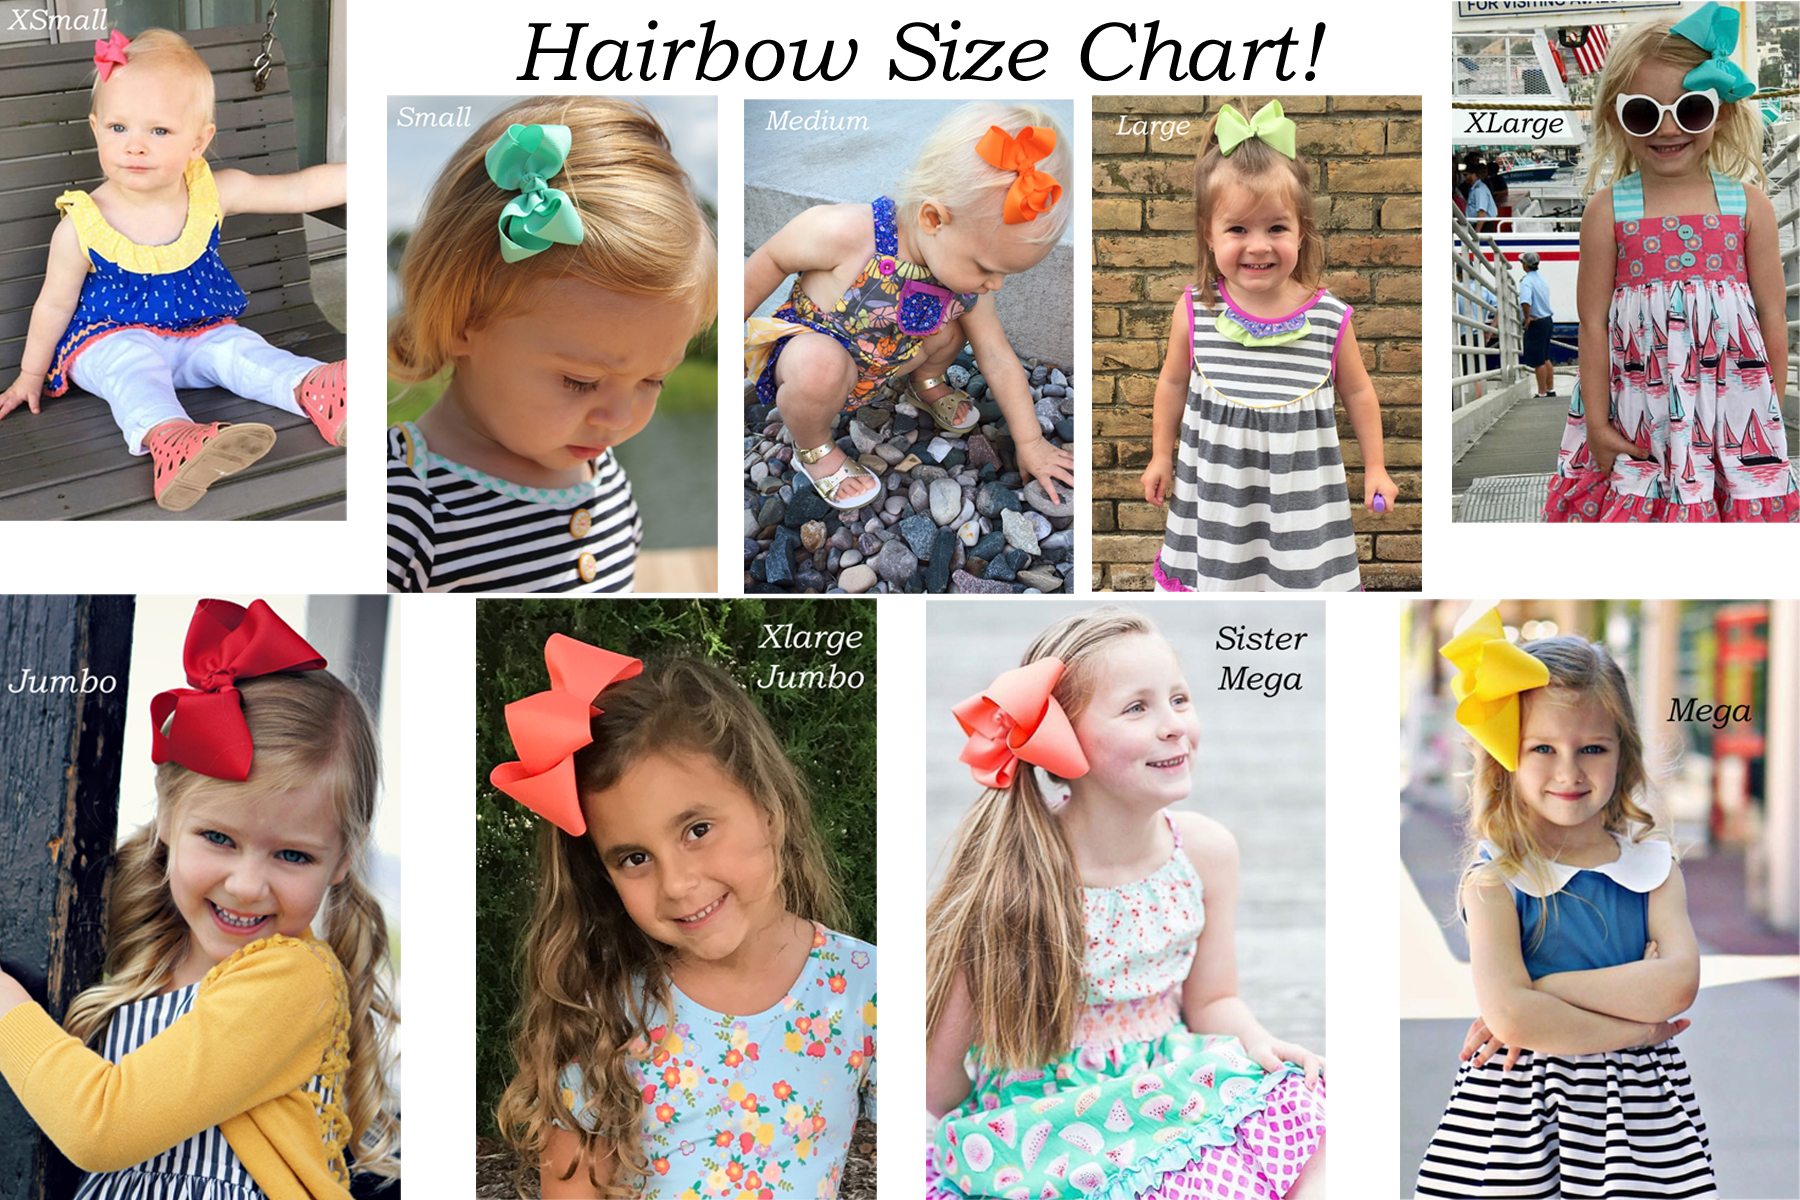 hairbow-size-chart.jpg